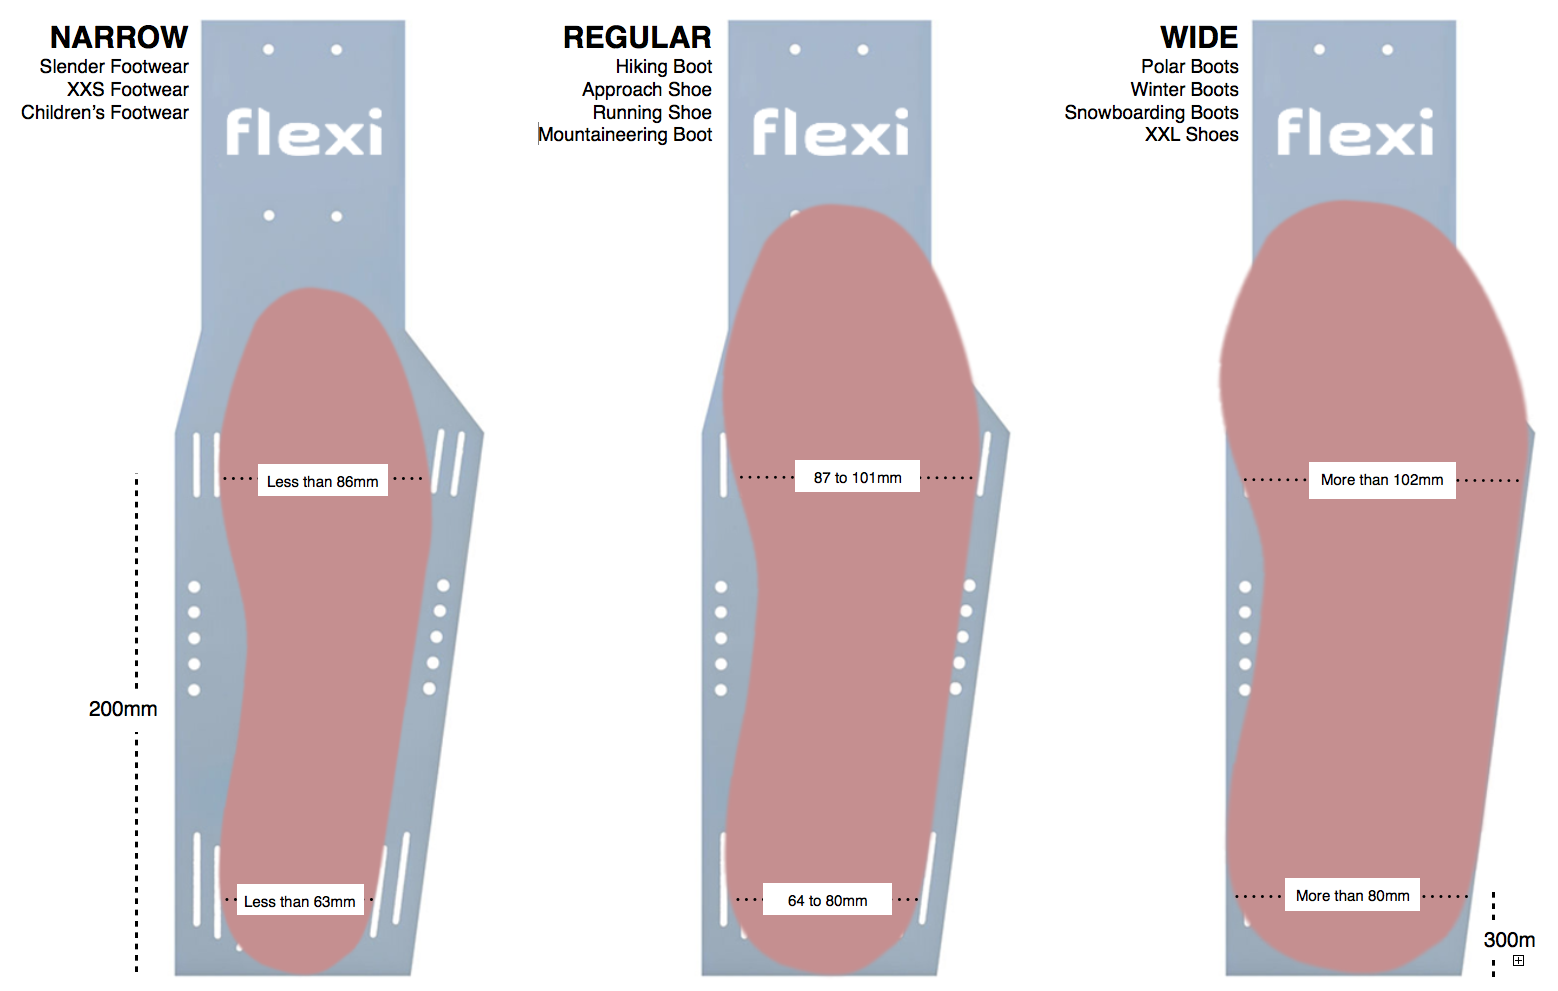 Flexi-Plateau-ski-bindings-sizing-chart.